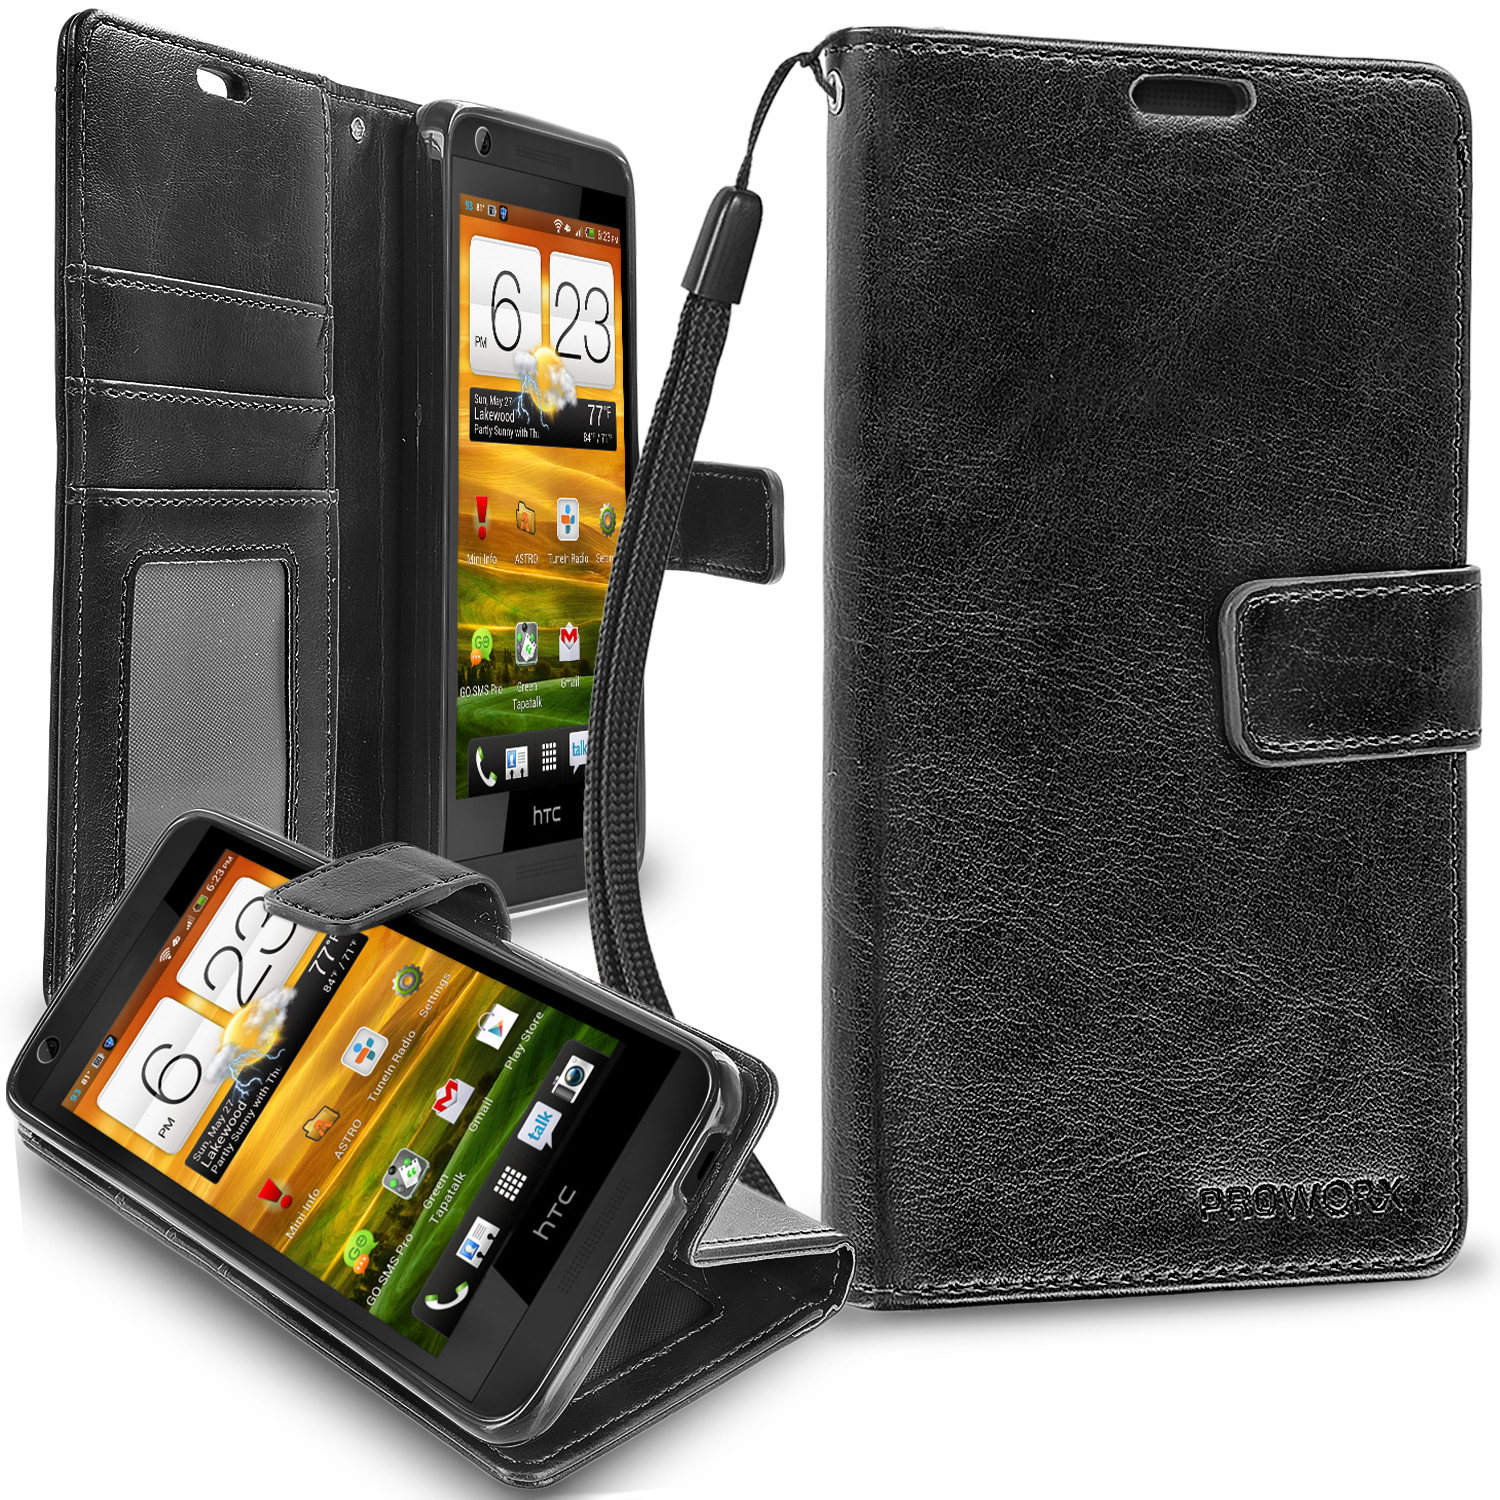 HTC Desire 626 / 626s Black ProWorx Wallet Case Luxury PU Leather Case Cover With Card Slots & Stand